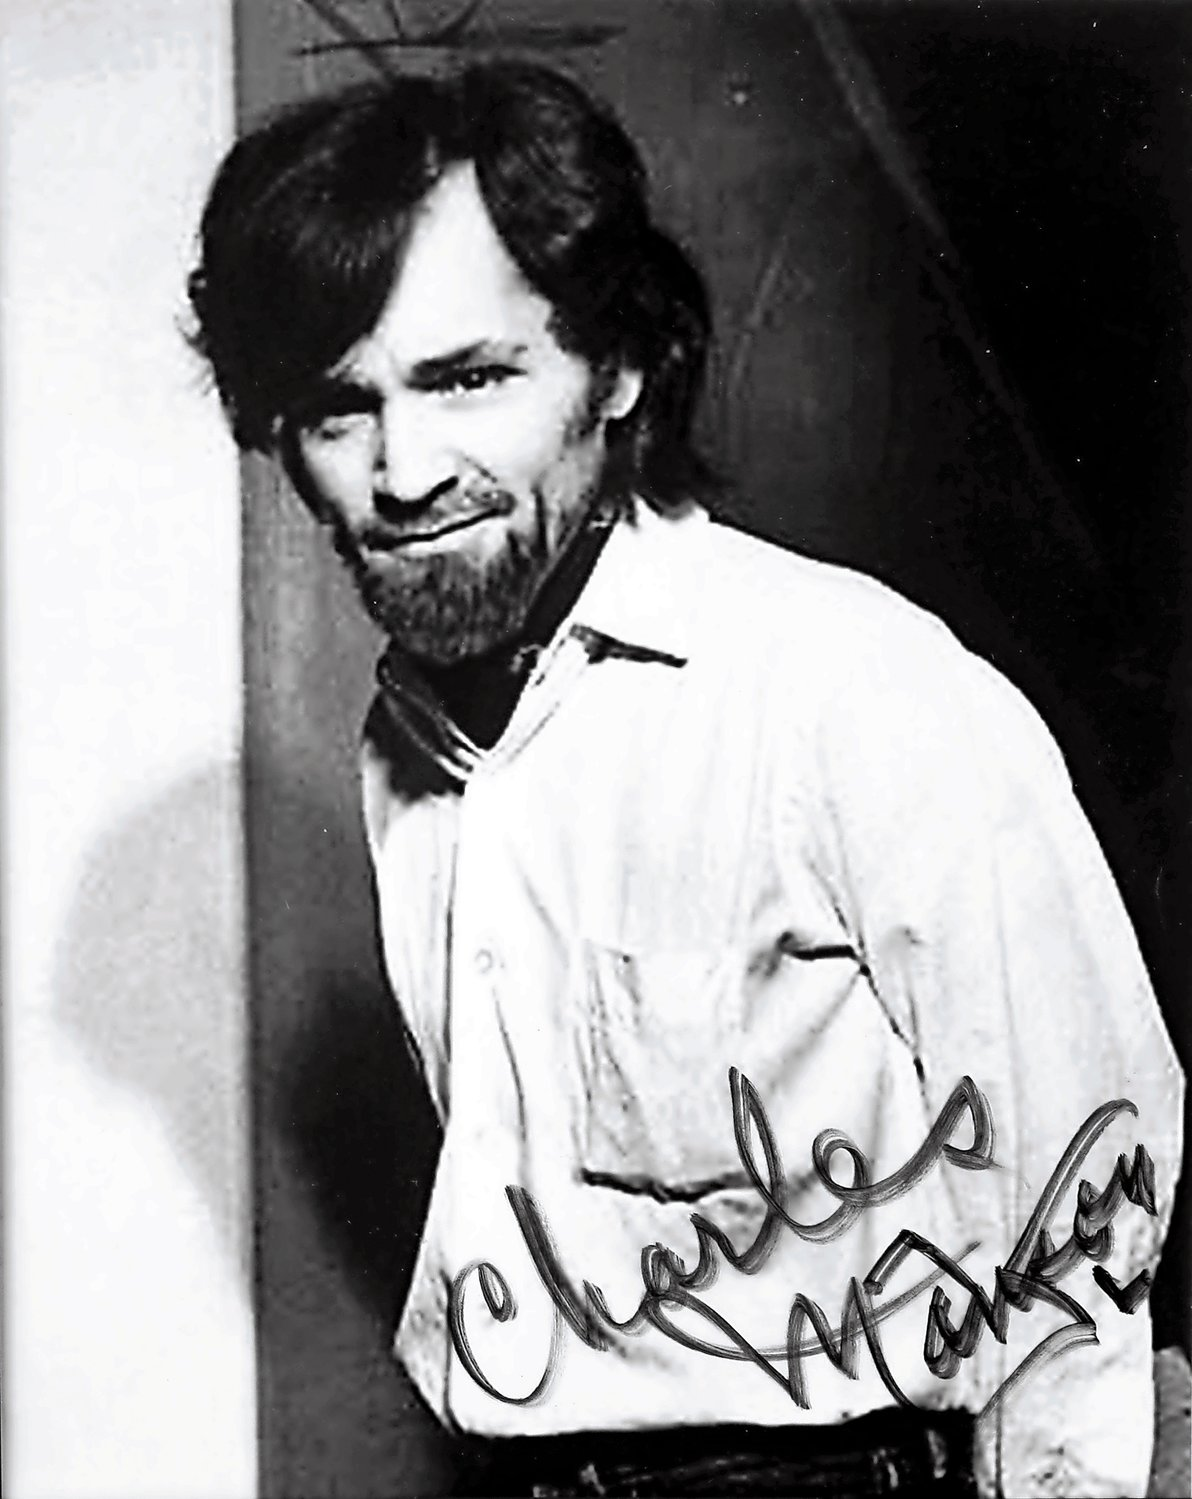 Aside from the letters, doodles and hair from Charles Manson, the collection also includes an autographed photo.